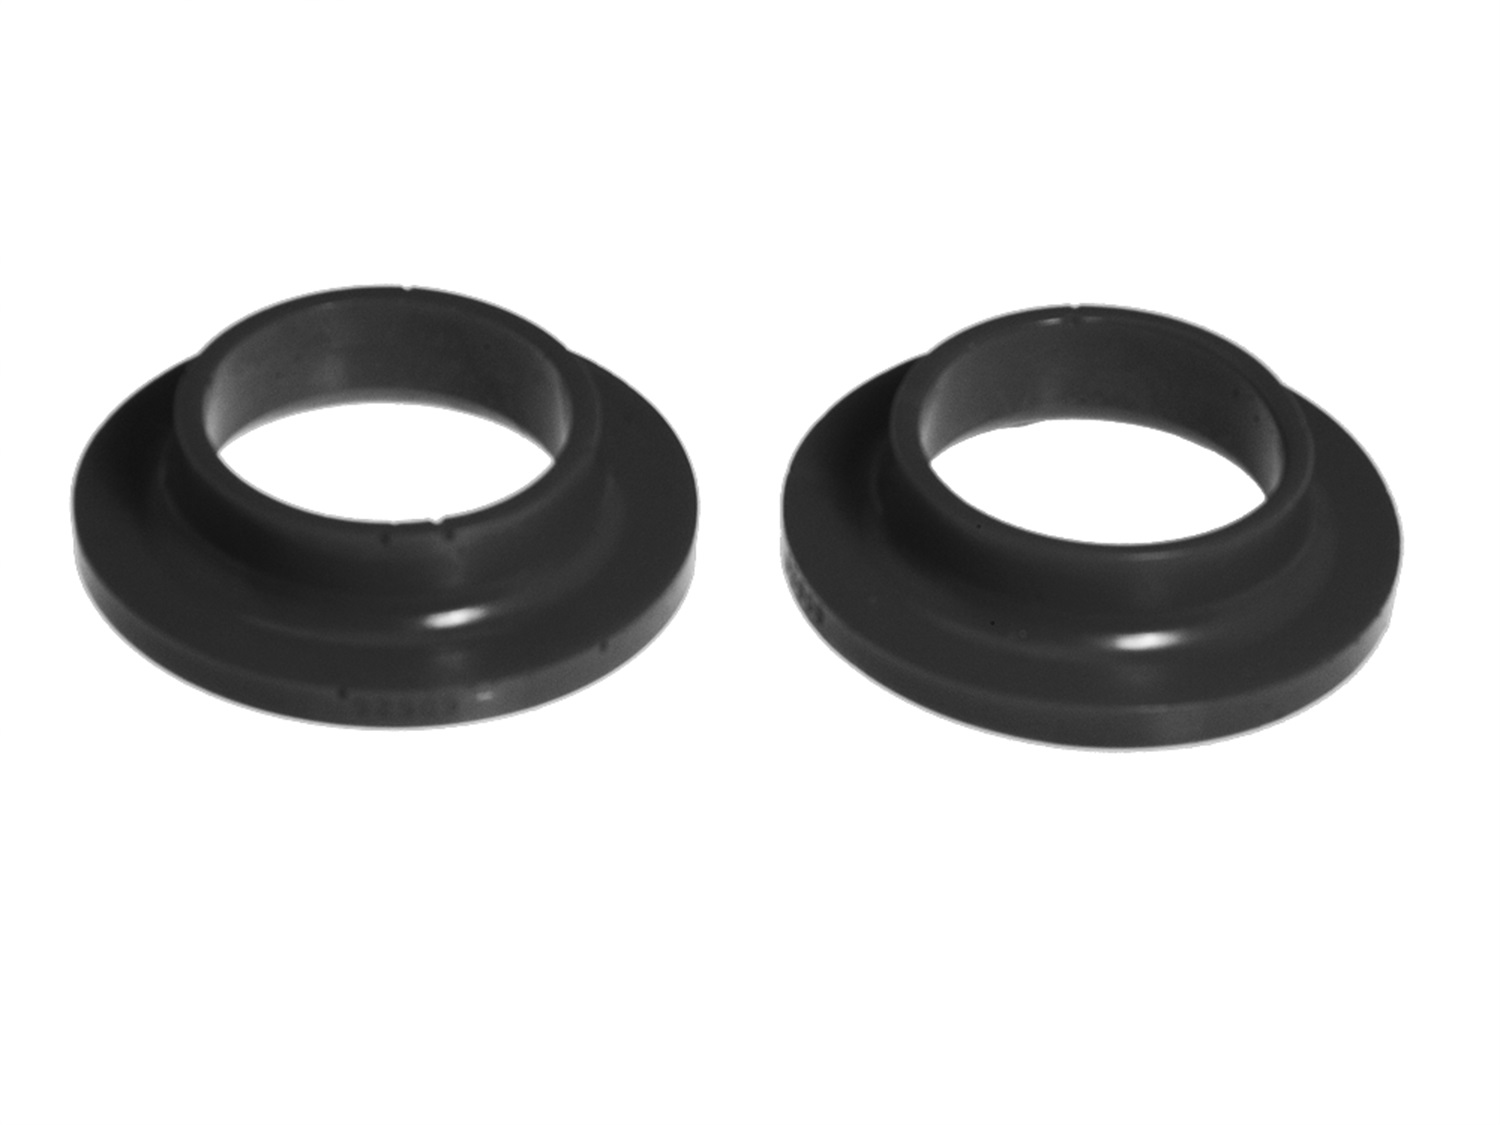 All Vehicles (Universal) Prothane Coil Spring Isolators - Black